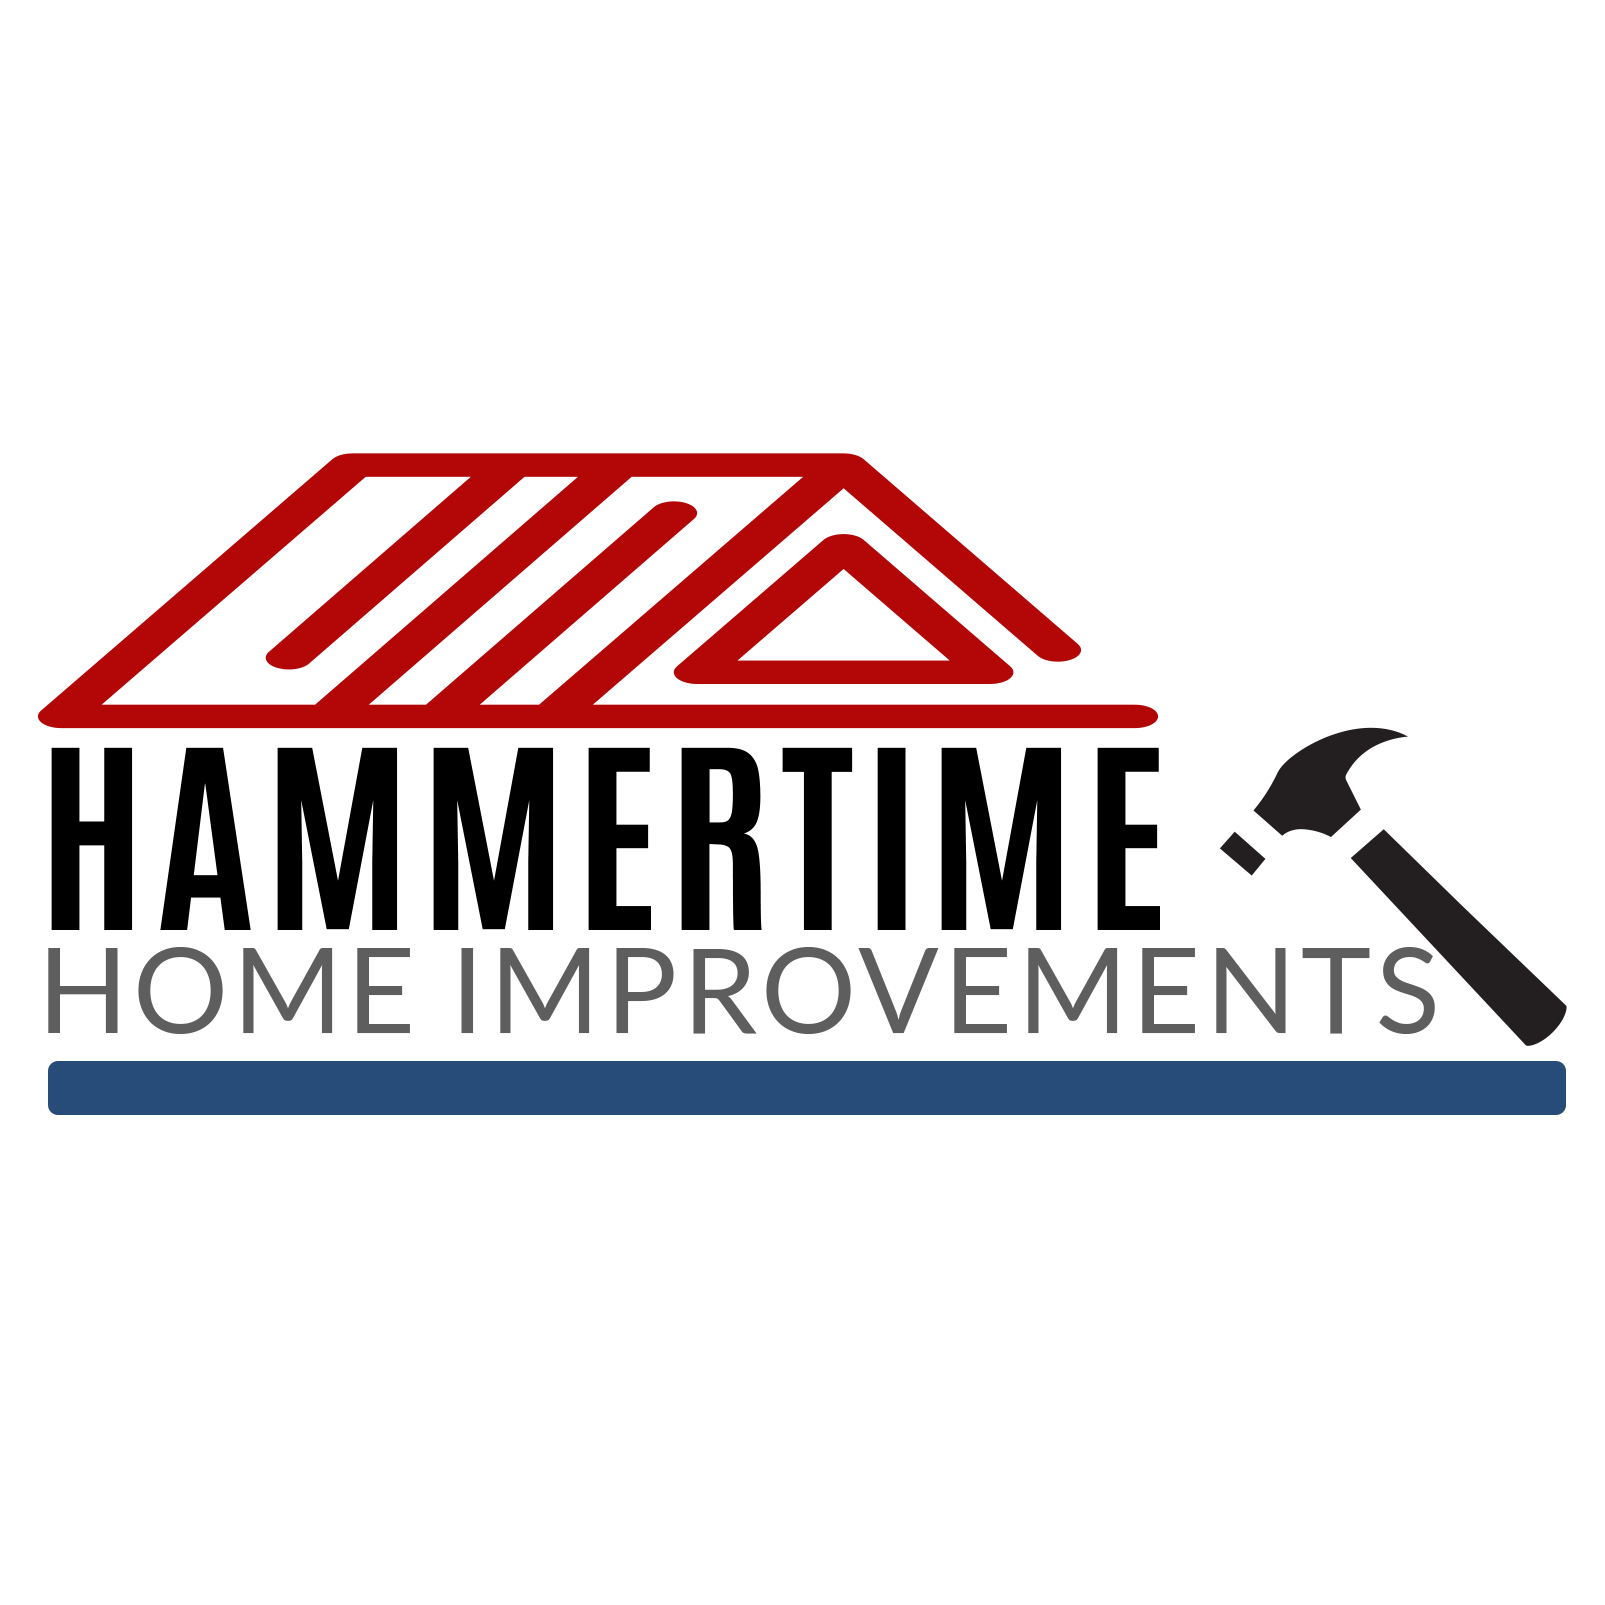 Hammertime Home Improvements